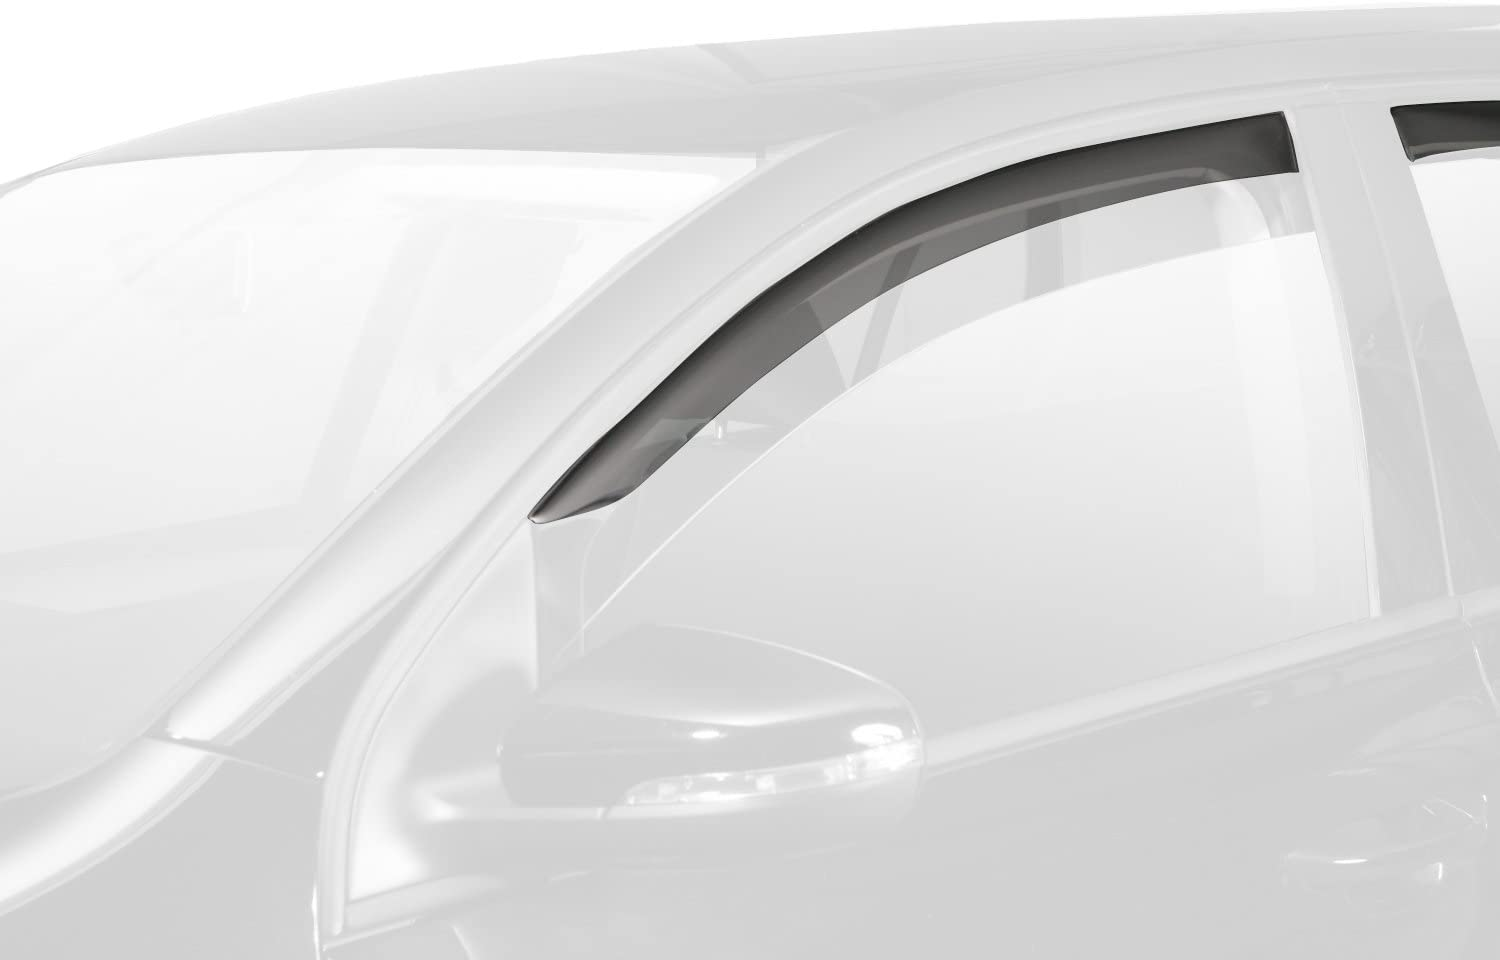 Front Rear Wind Deflectors Fits Toyota AURIS 7 on 5-Door Hatchback HEKO-29390 4 Pieces